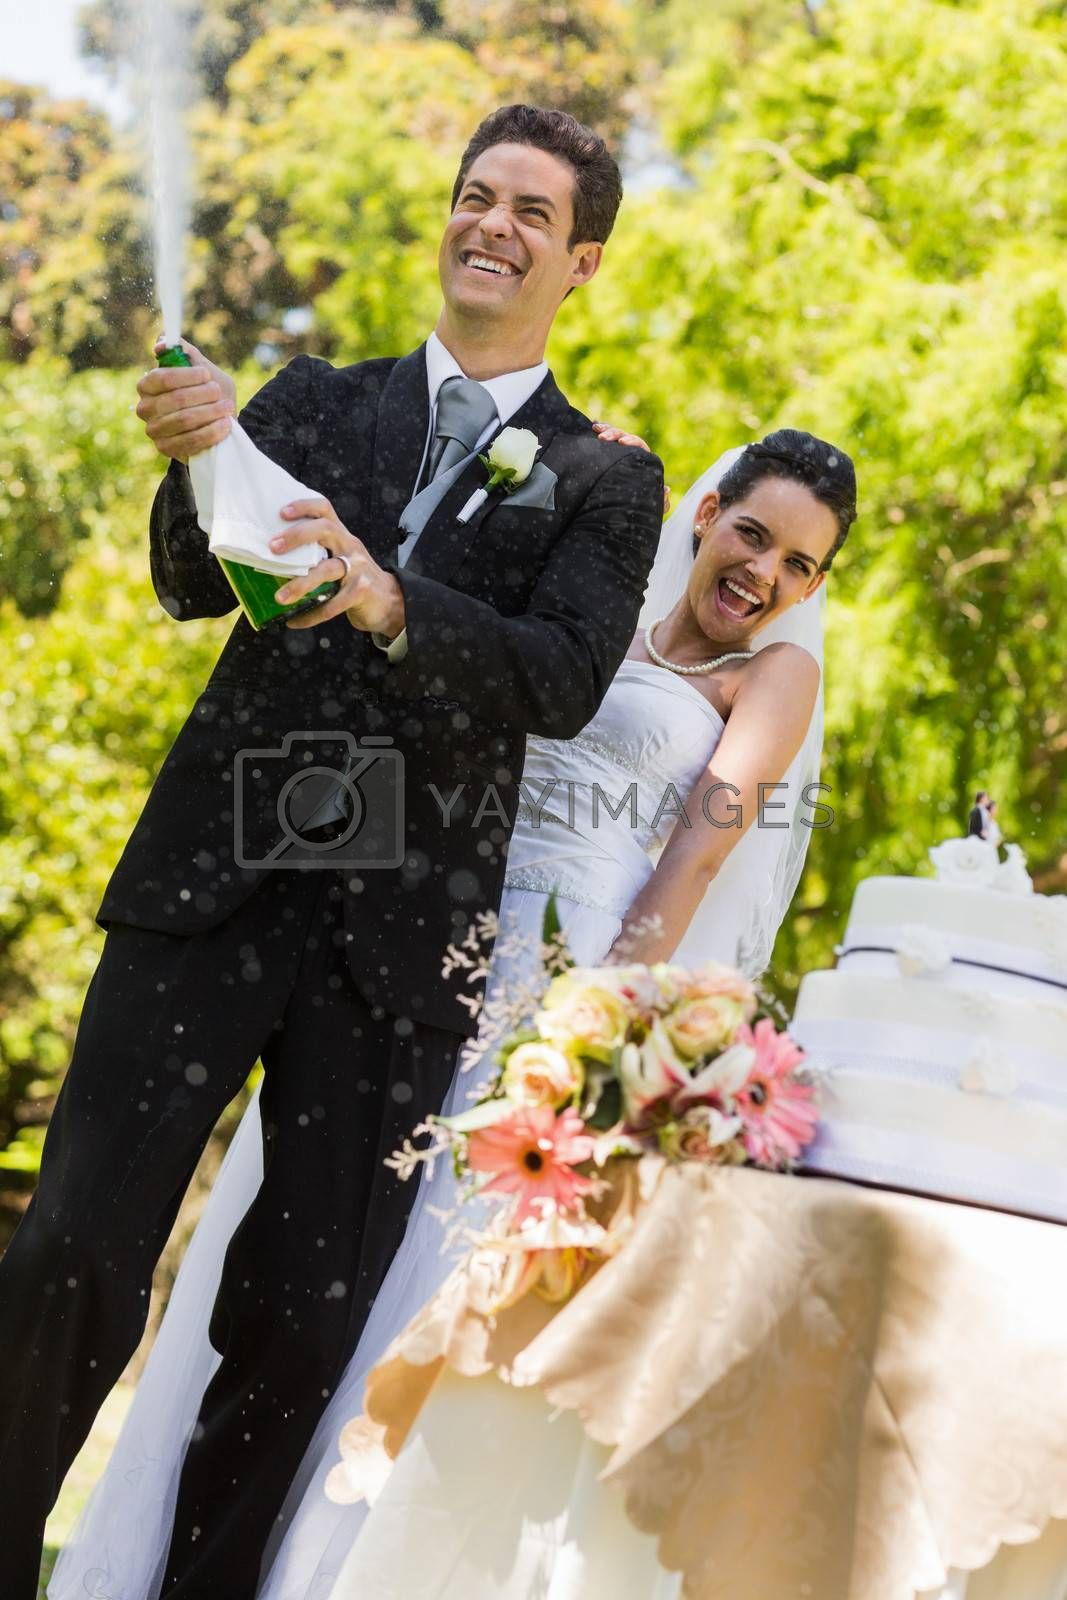 Happy young newlywed couple with groom opening the champagne bottle at park